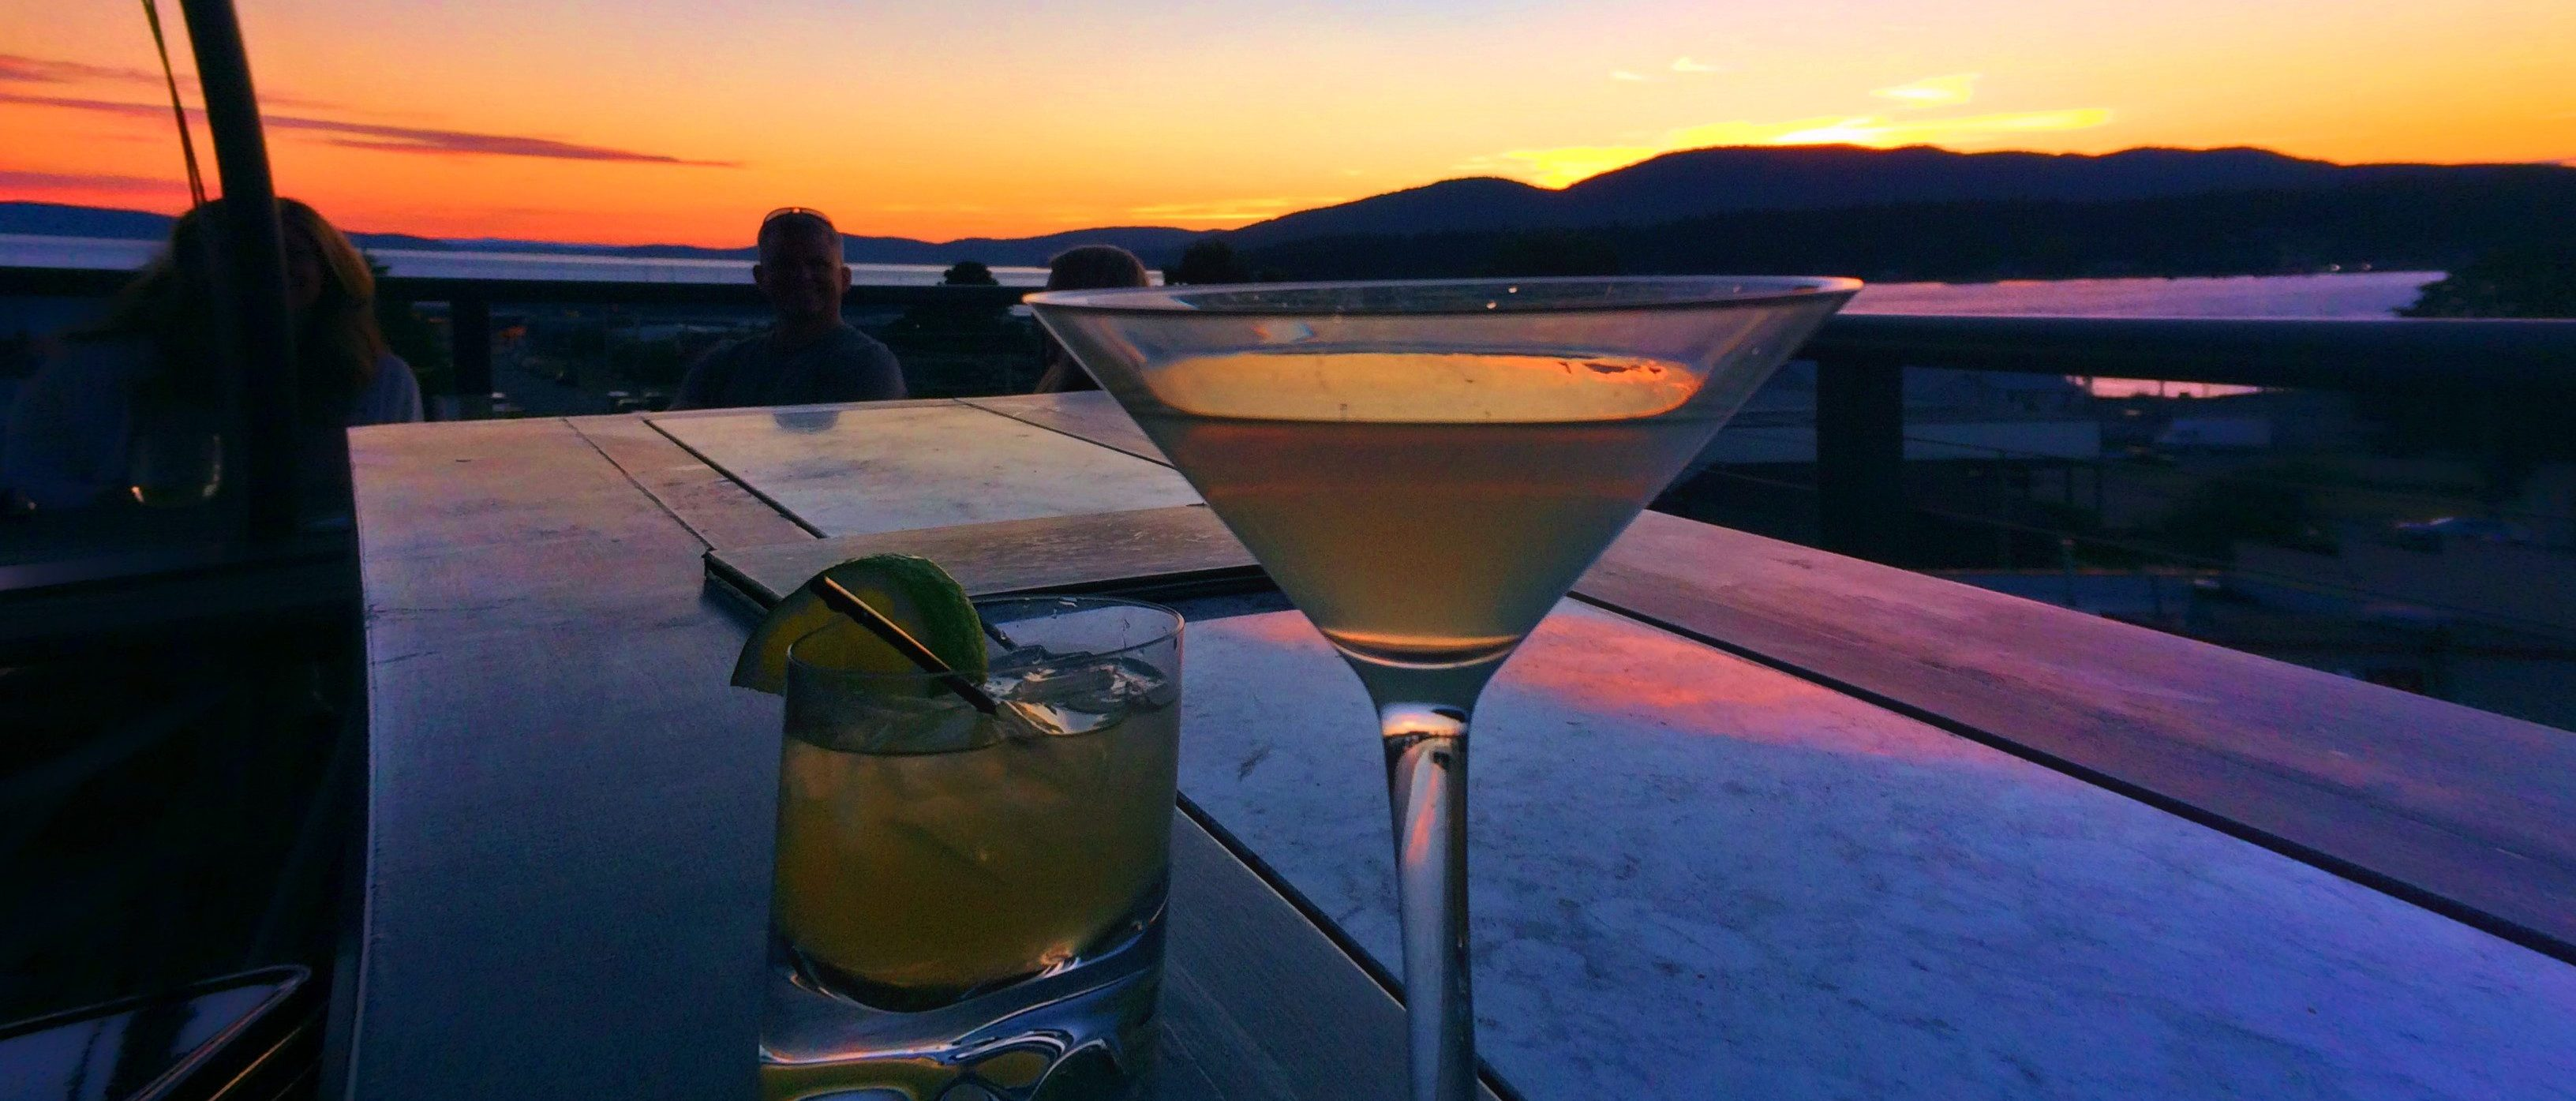 Cocktails at Sunset on Rooftop of Majestic Inn Anacortes header